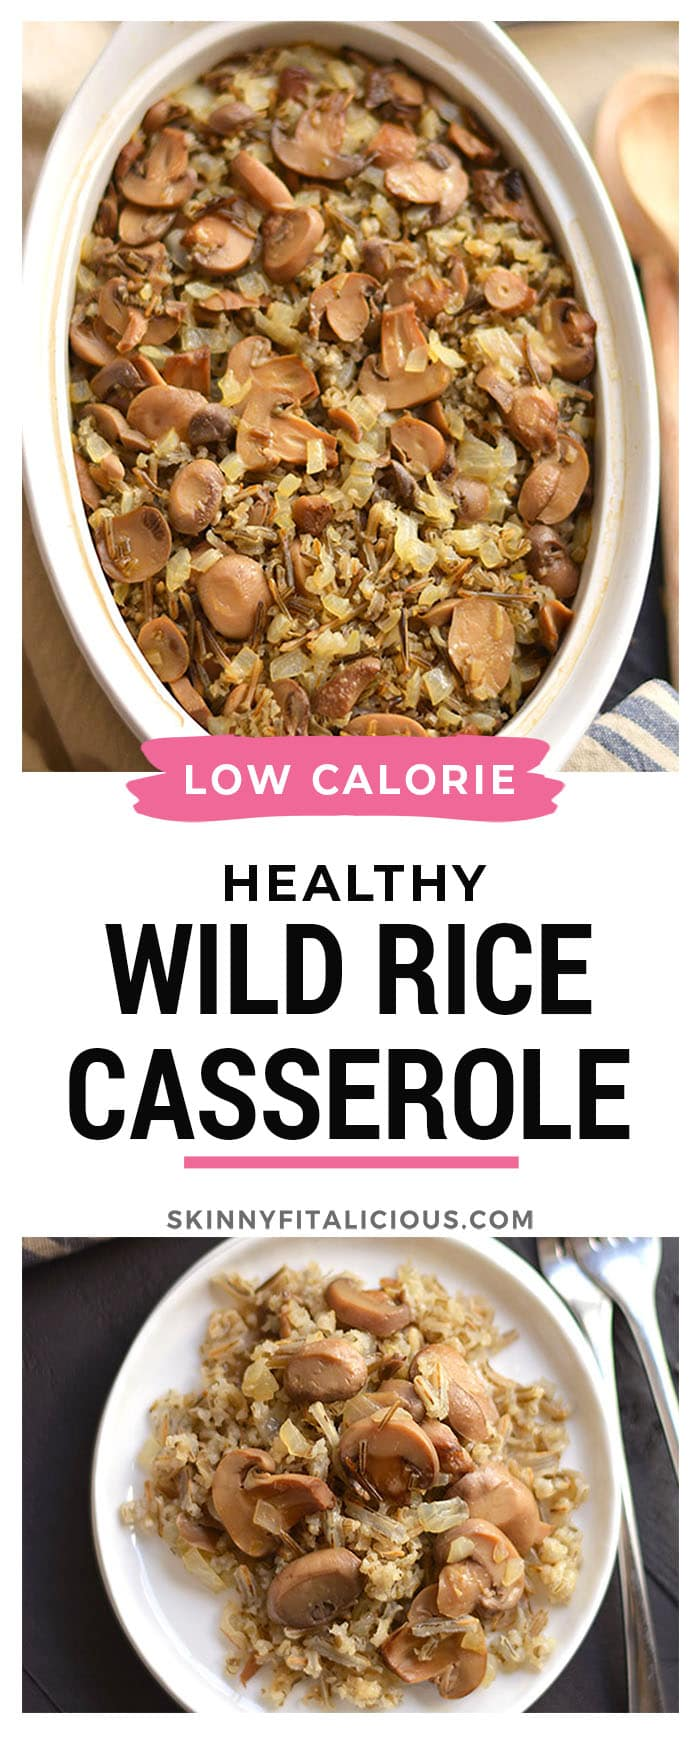 This Classic and Healthy Wild Rice Casserole is made with mushrooms and onions. A hearty vegetarian or side dish that's easy to make and guaranteed to please a crowd.